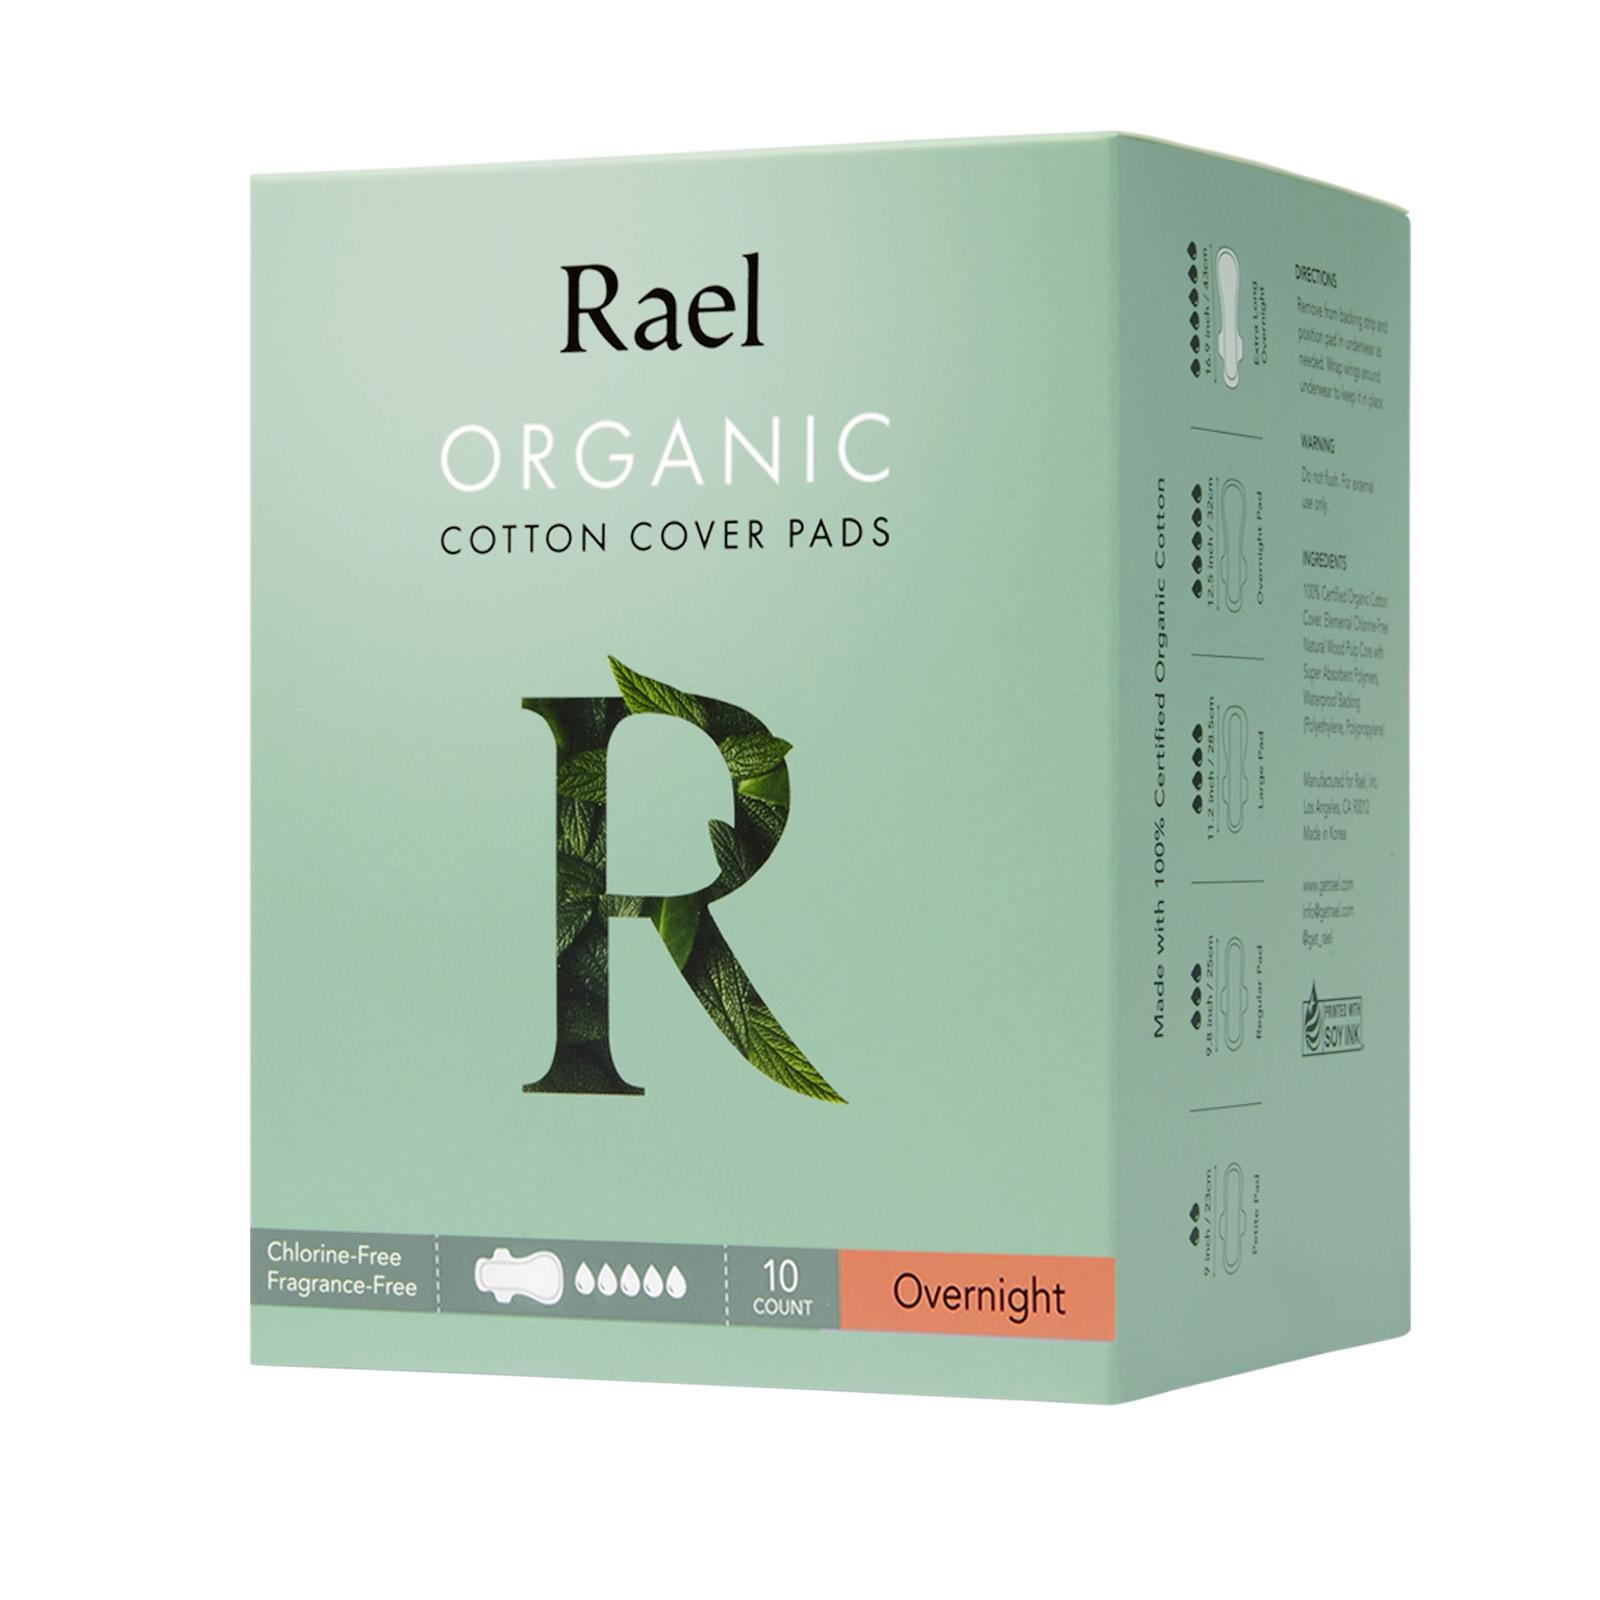 Rael Organic Cotton Cover Pads - Overnight